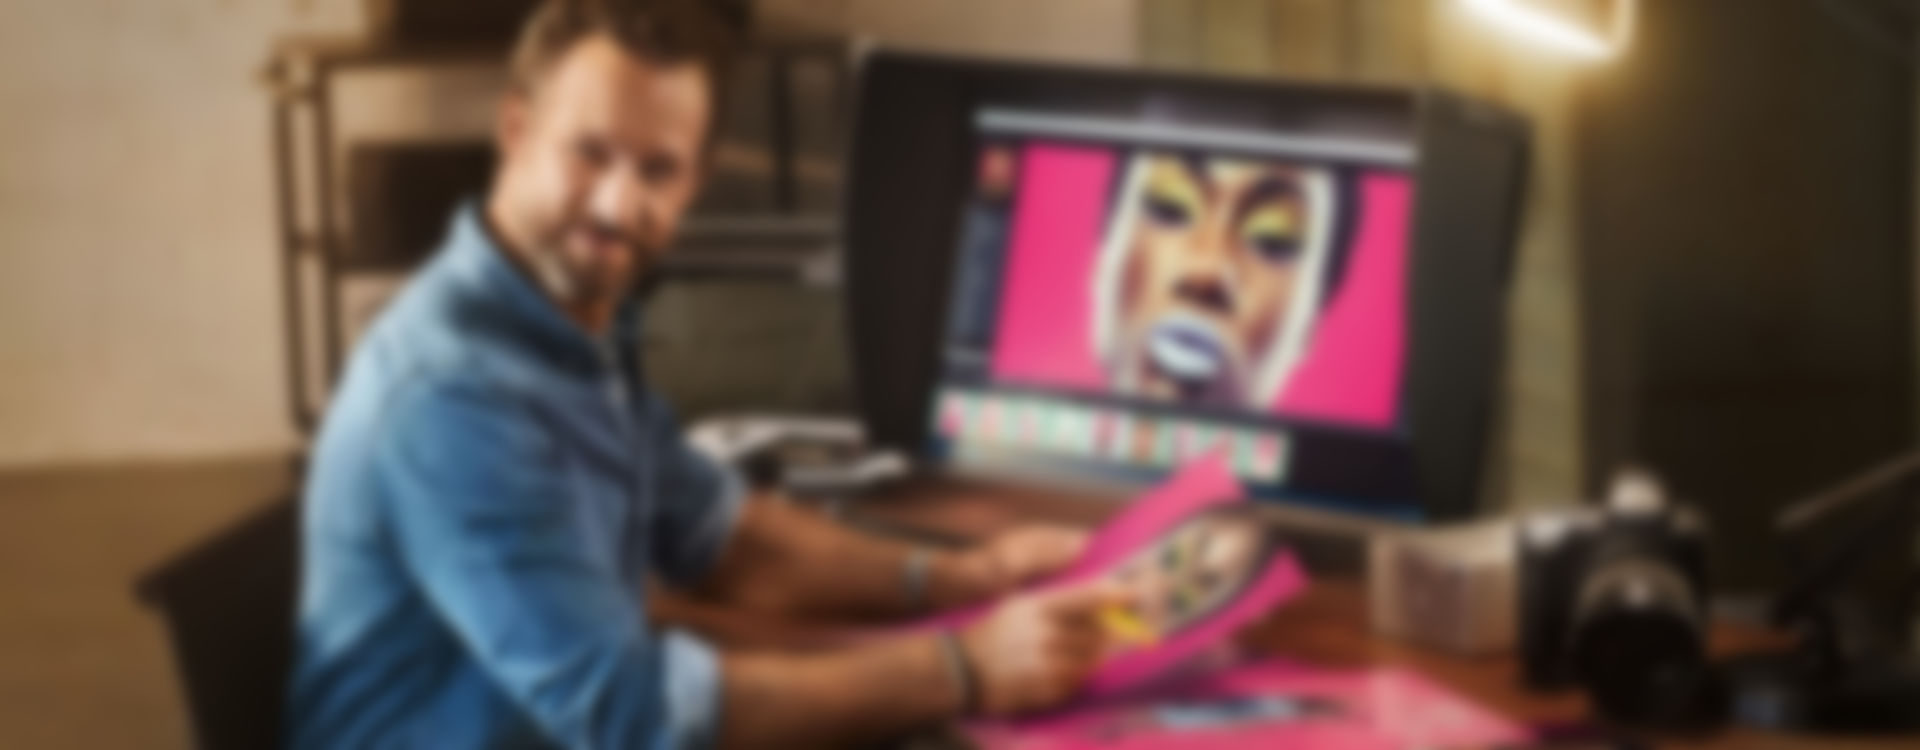 Graphic monitors for photography, image editing and retouching